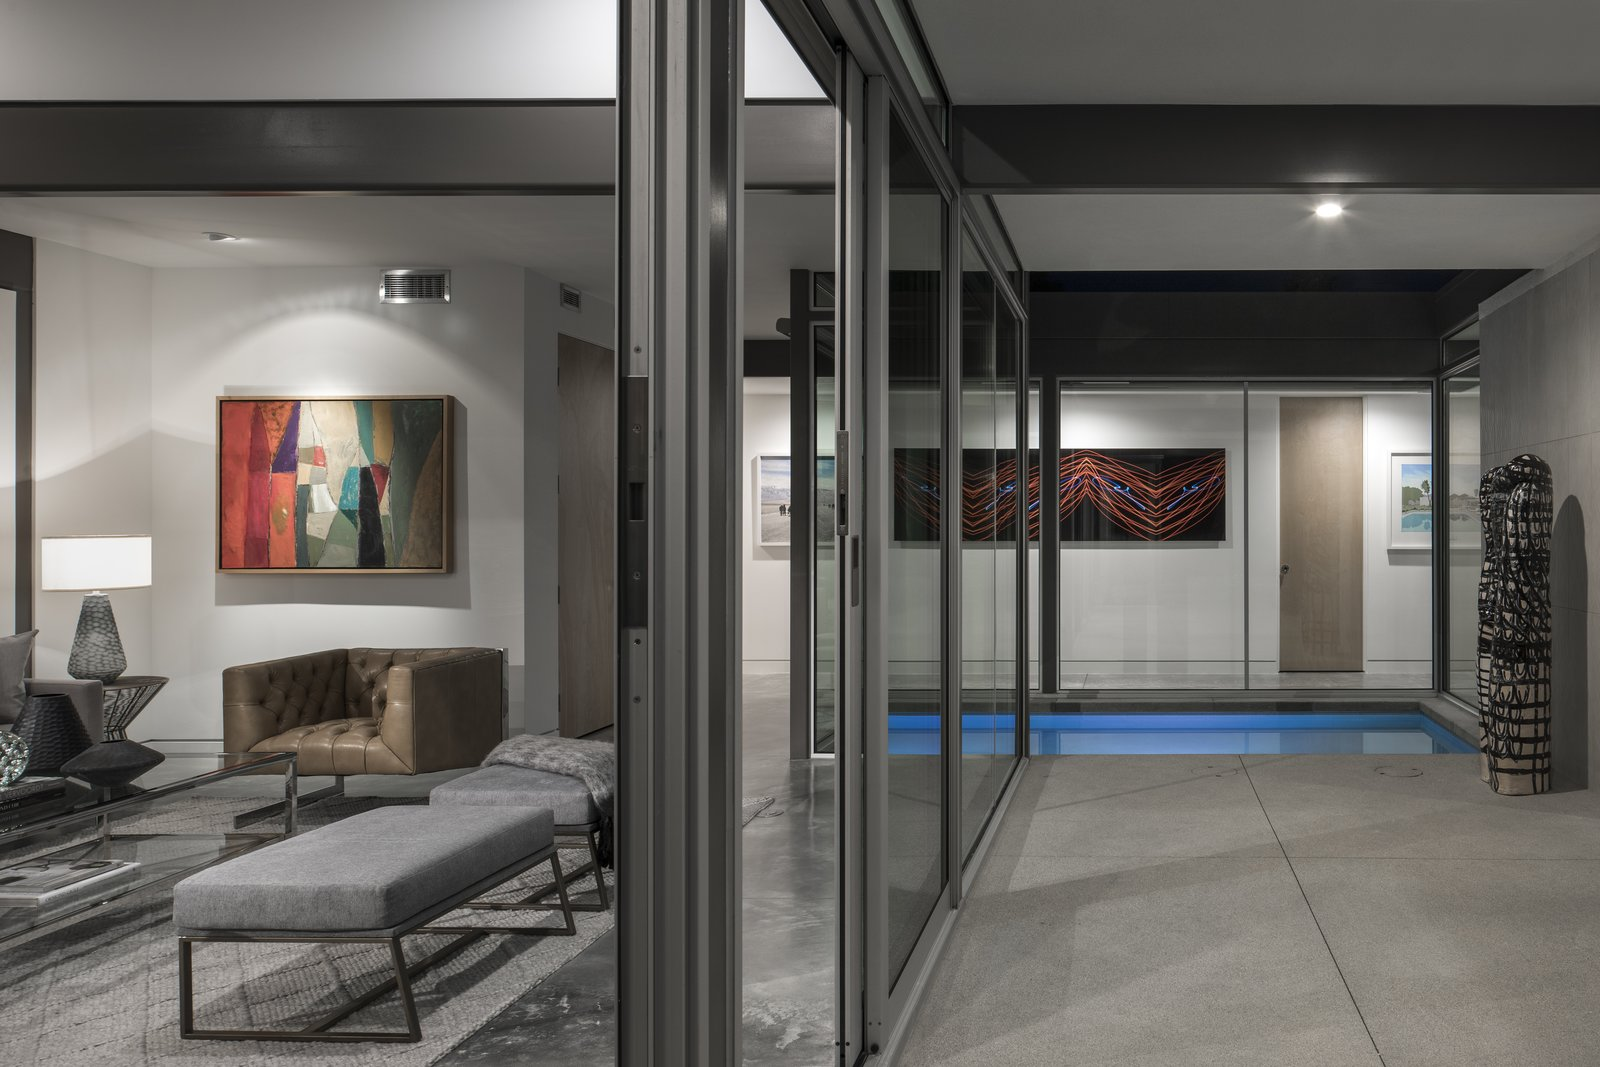 Further emphasizing the indoor-outdoor connection is a water feature which extends between spaces.